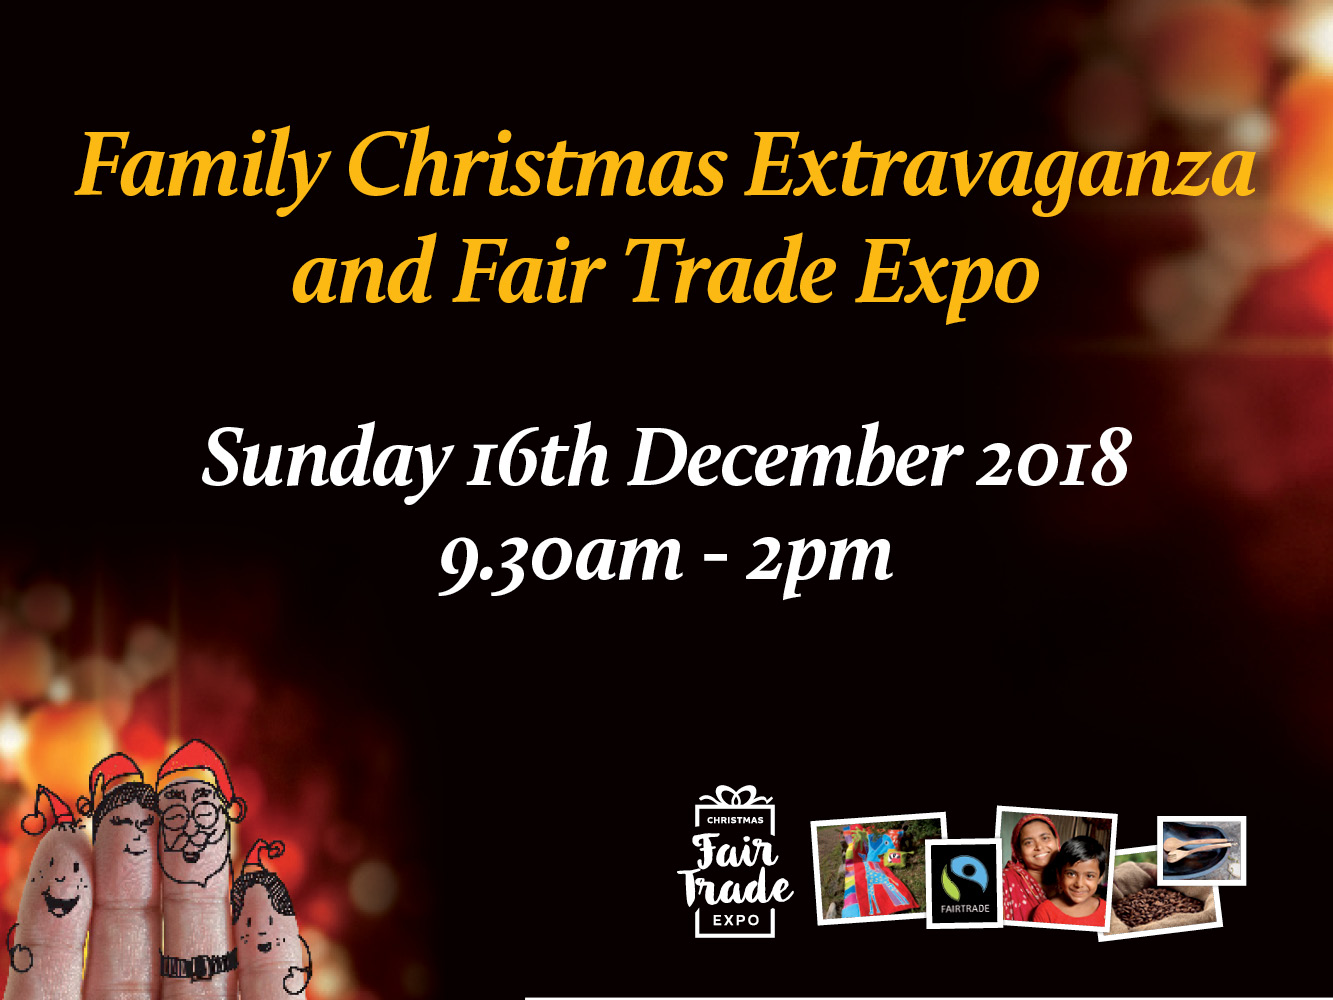 Christmas Extravaganza & Fair Trade Expo